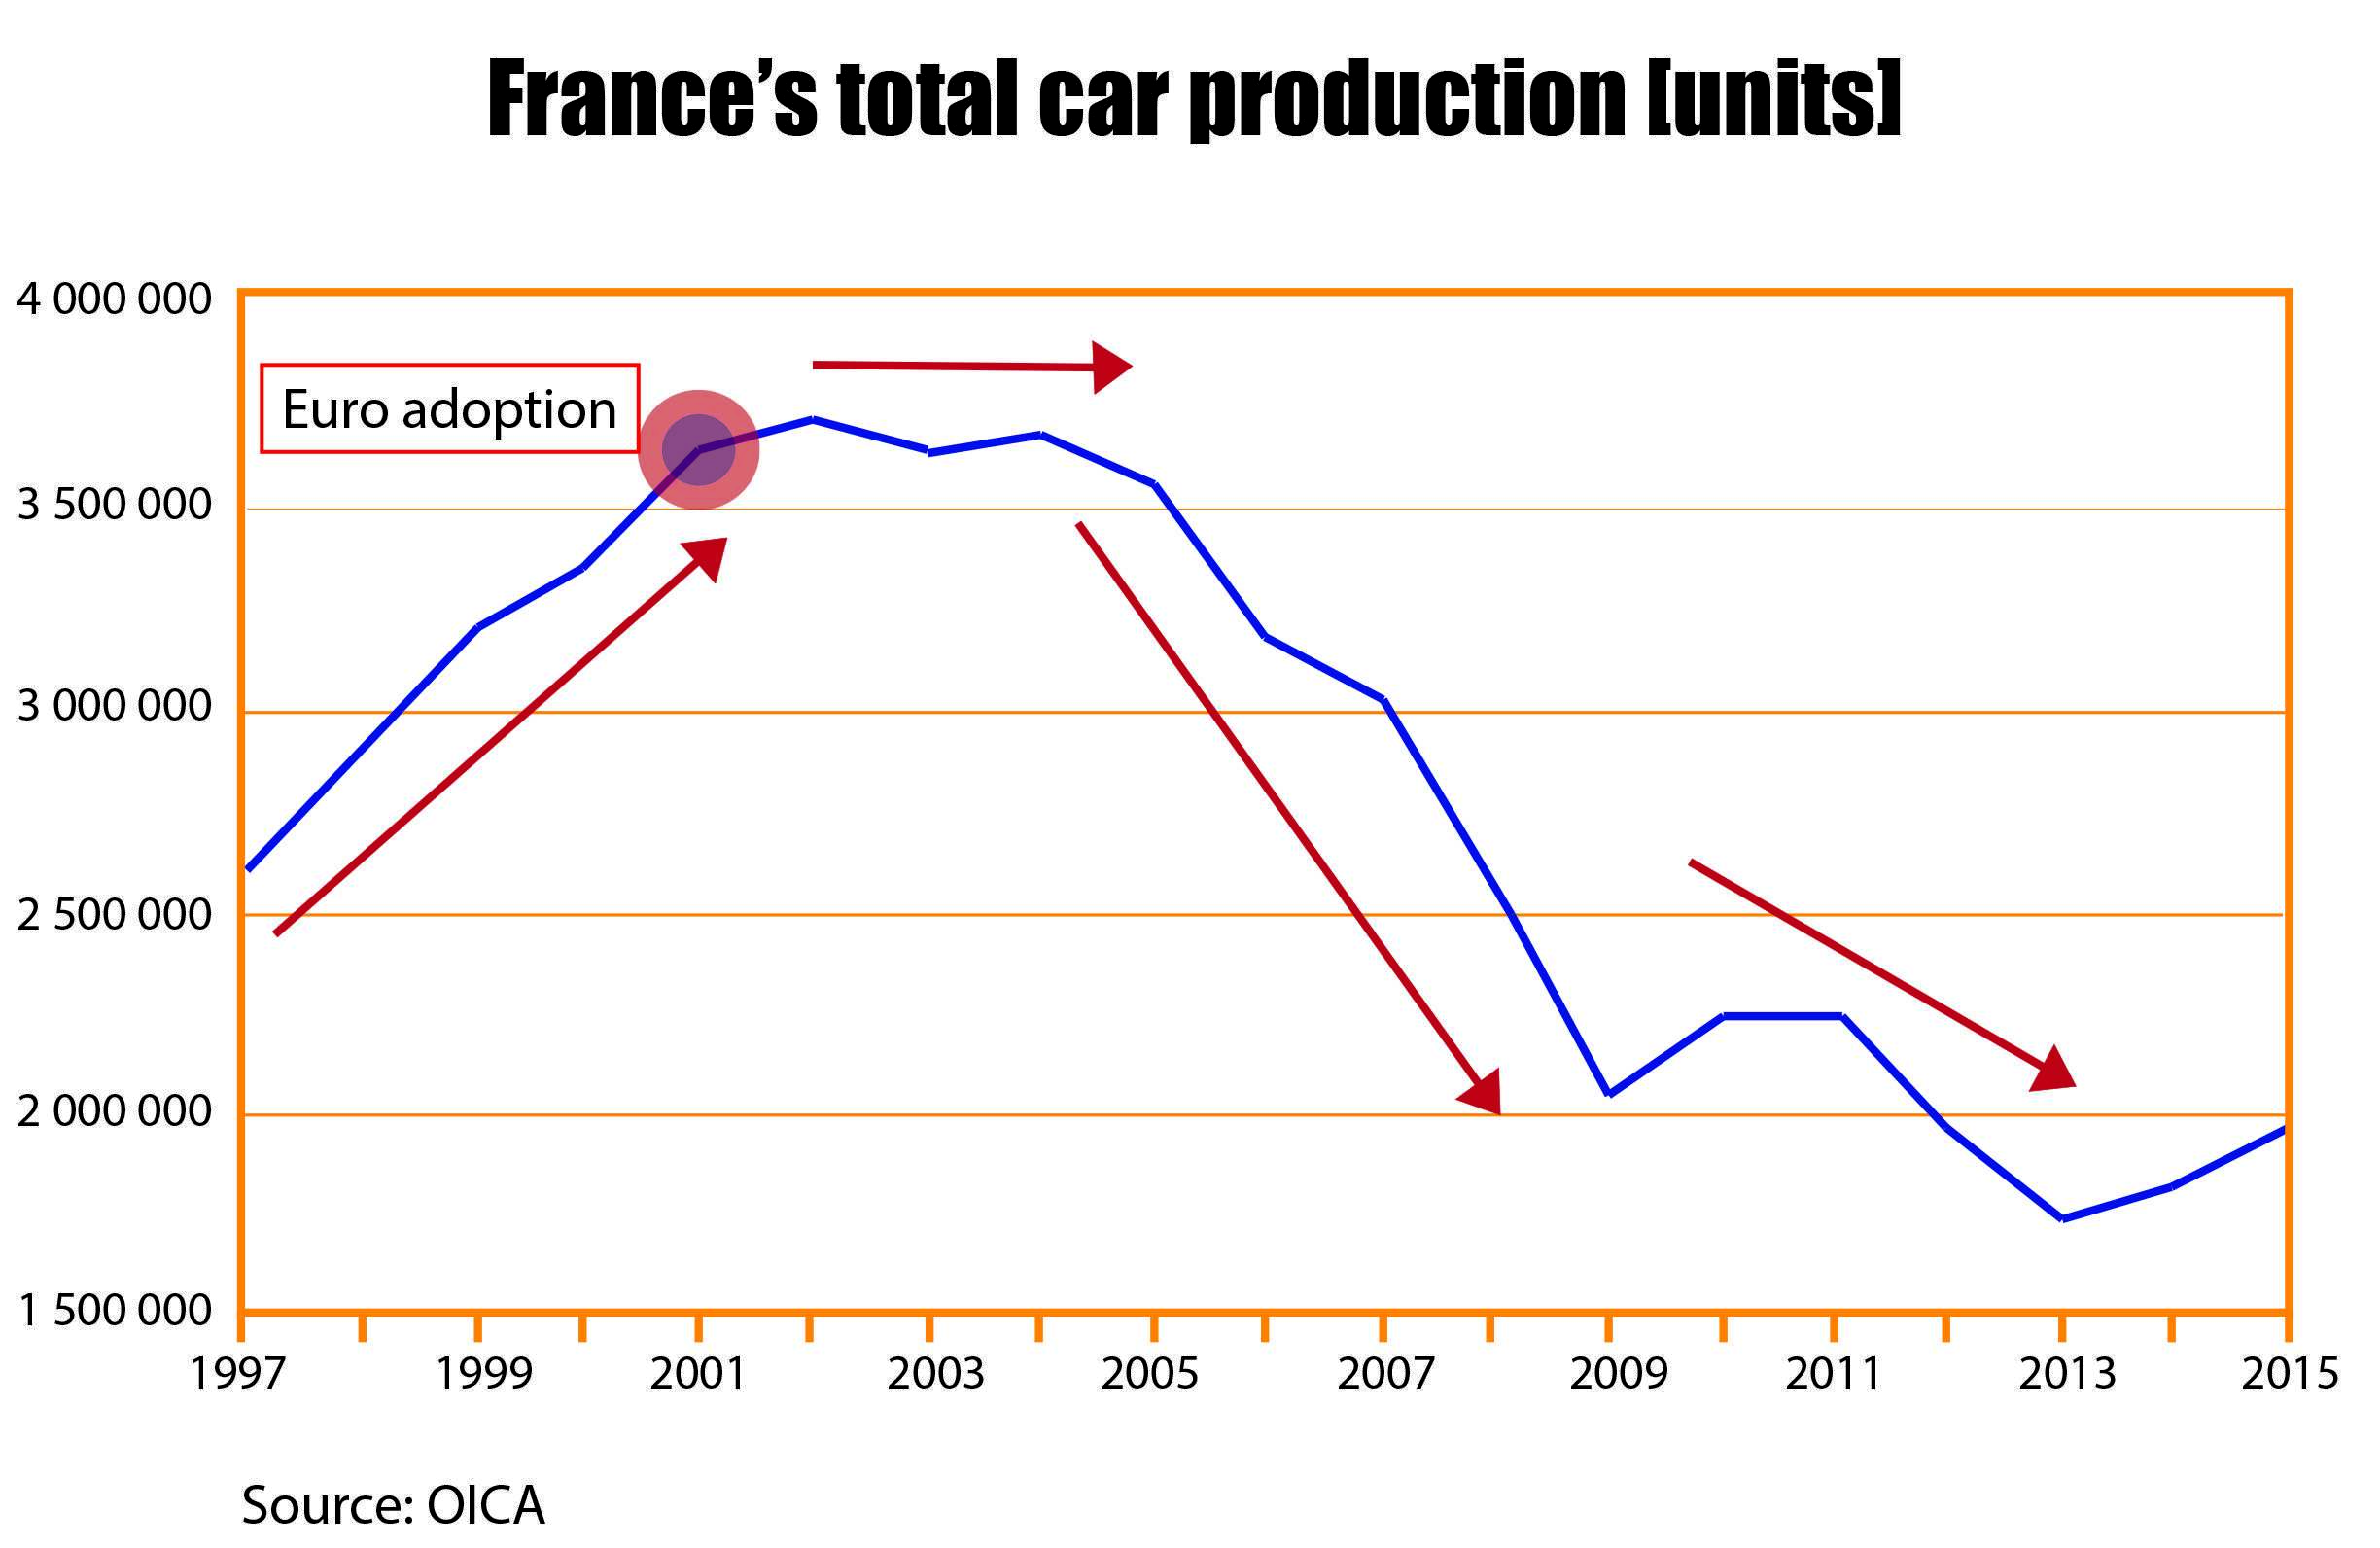 https://gefira.org/wp-content/uploads/2016/11/france-car-production-FINAL.jpg